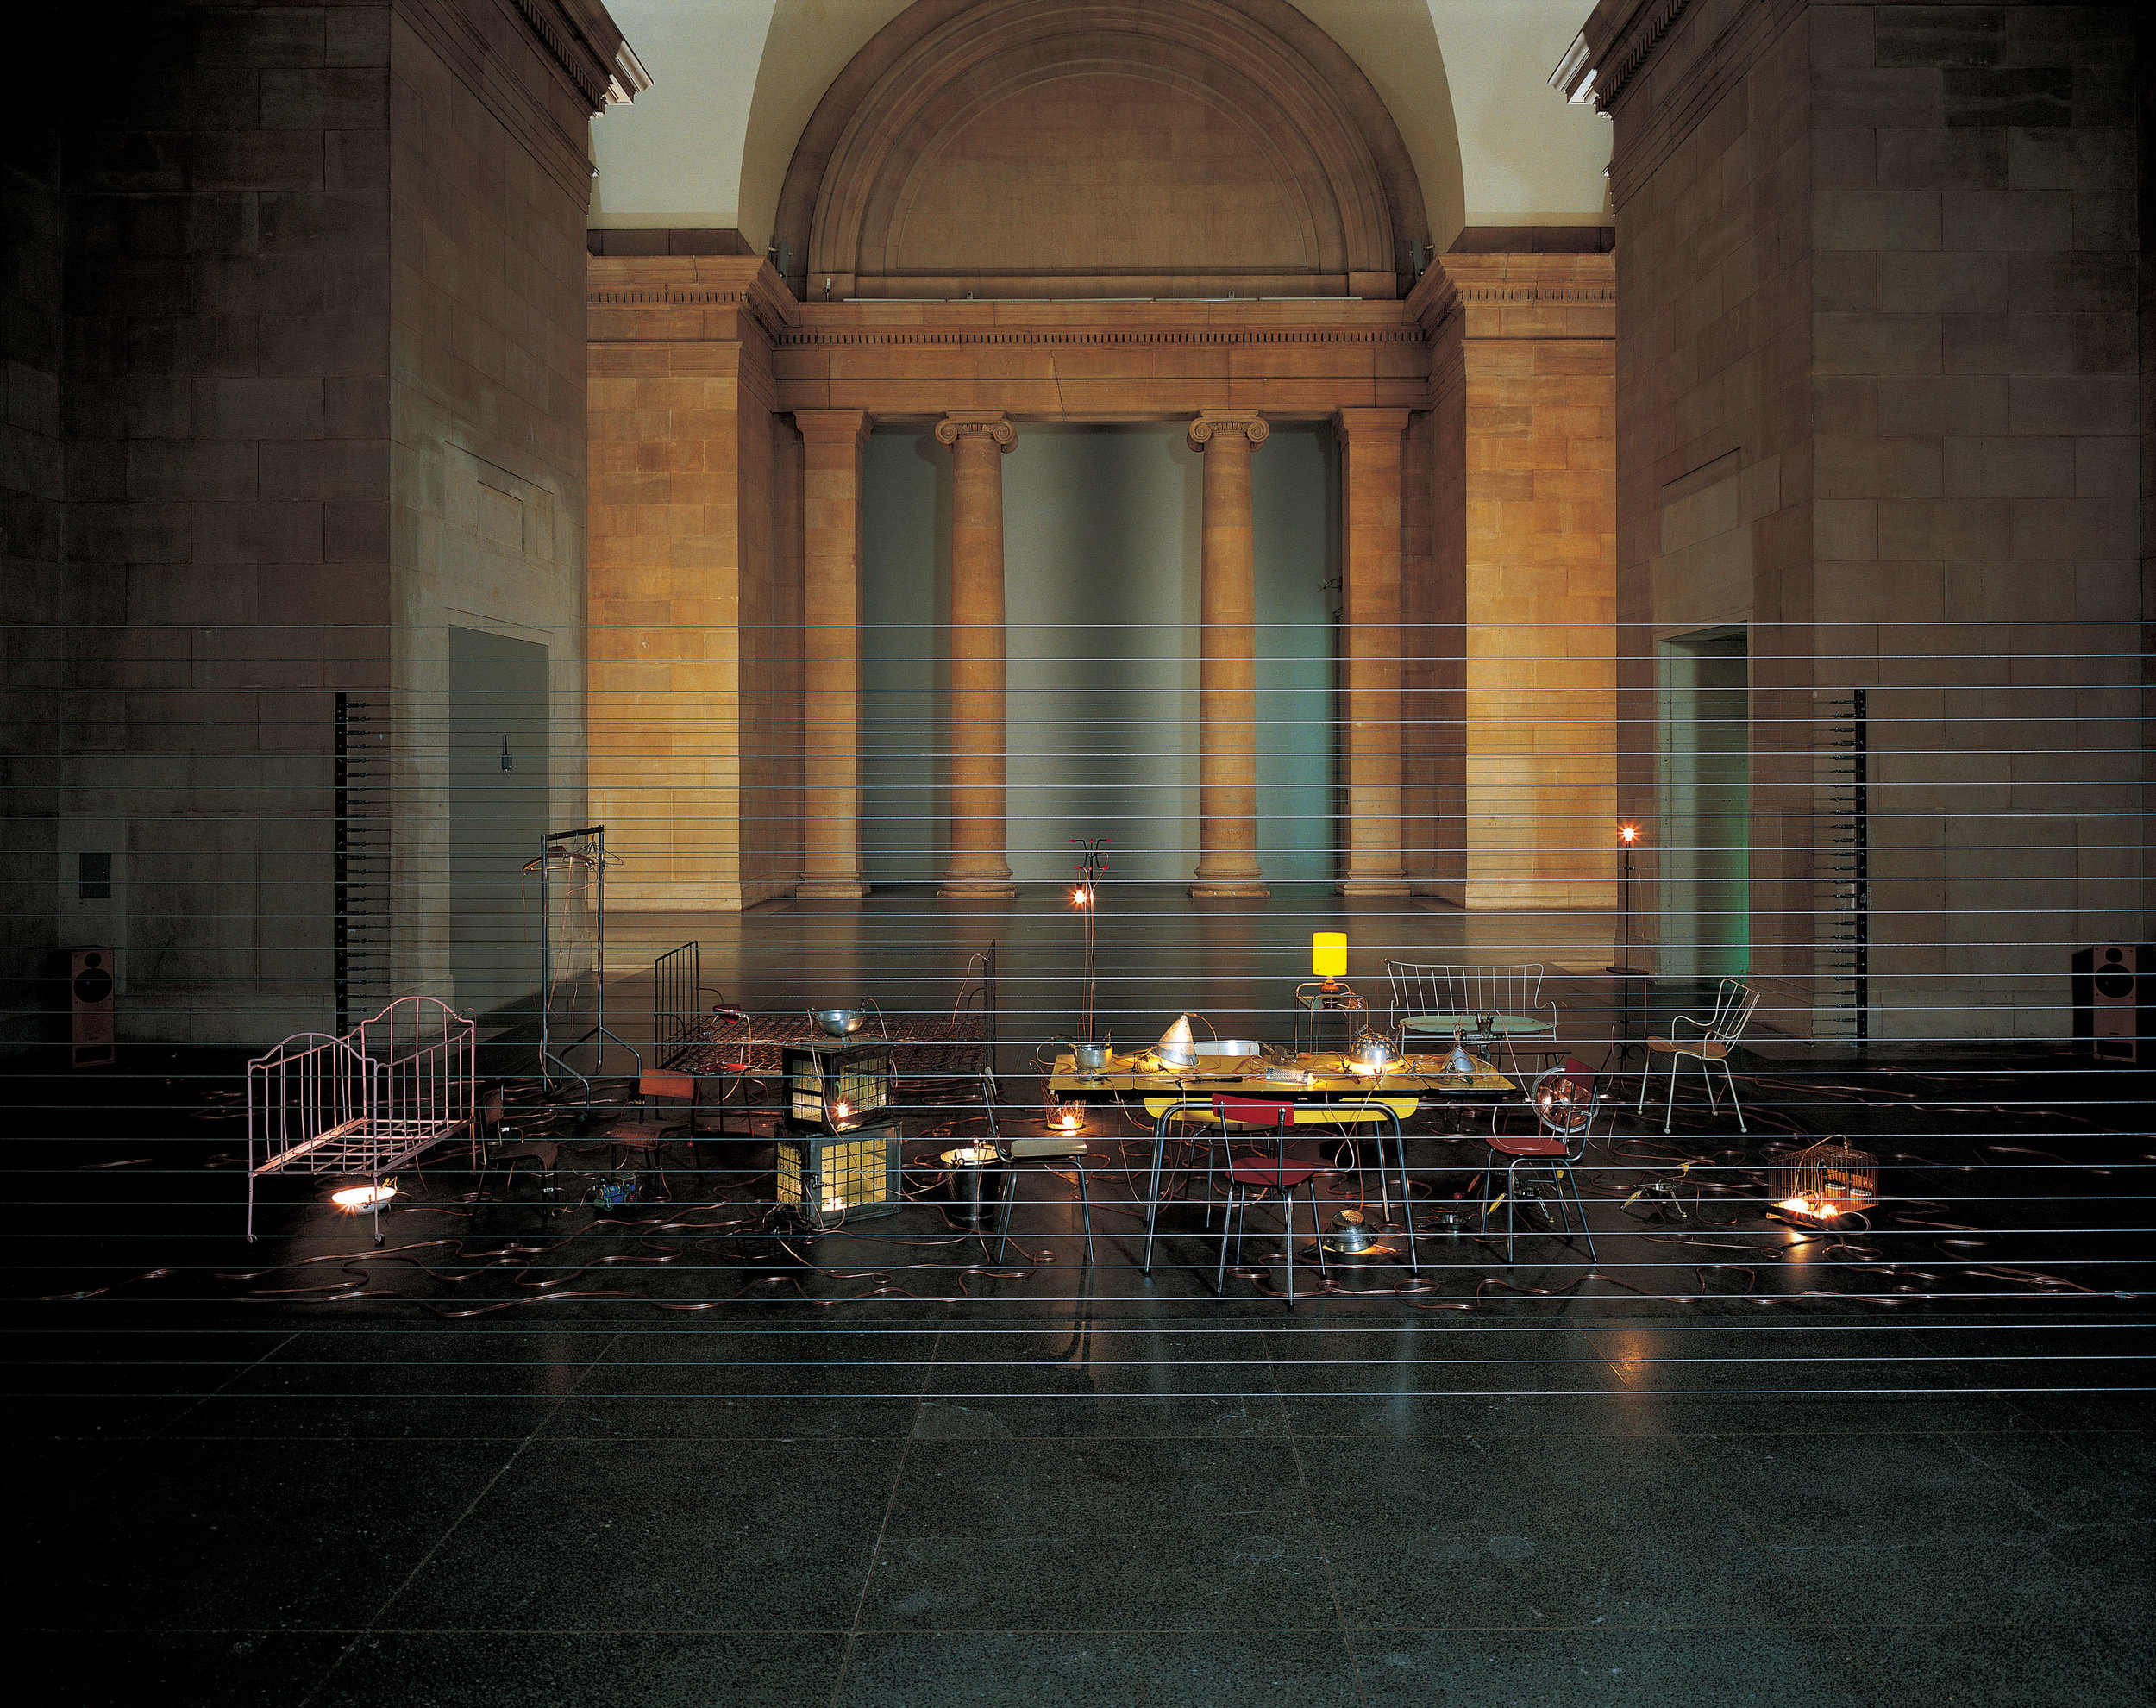 Homebound (2000) Mona Hatoum, mixed-media installation with kitchen utensils, furniture, electric wire, light bulbs, computerized dimmer unit, amplifier and speakers. Installation view at Duveen Galleries in Tate Britain, London, 2000. Photo by Edward Woodman. Courtesy the artist and Galleria Continua, San Gimignano/Beijing/Le Moulin.